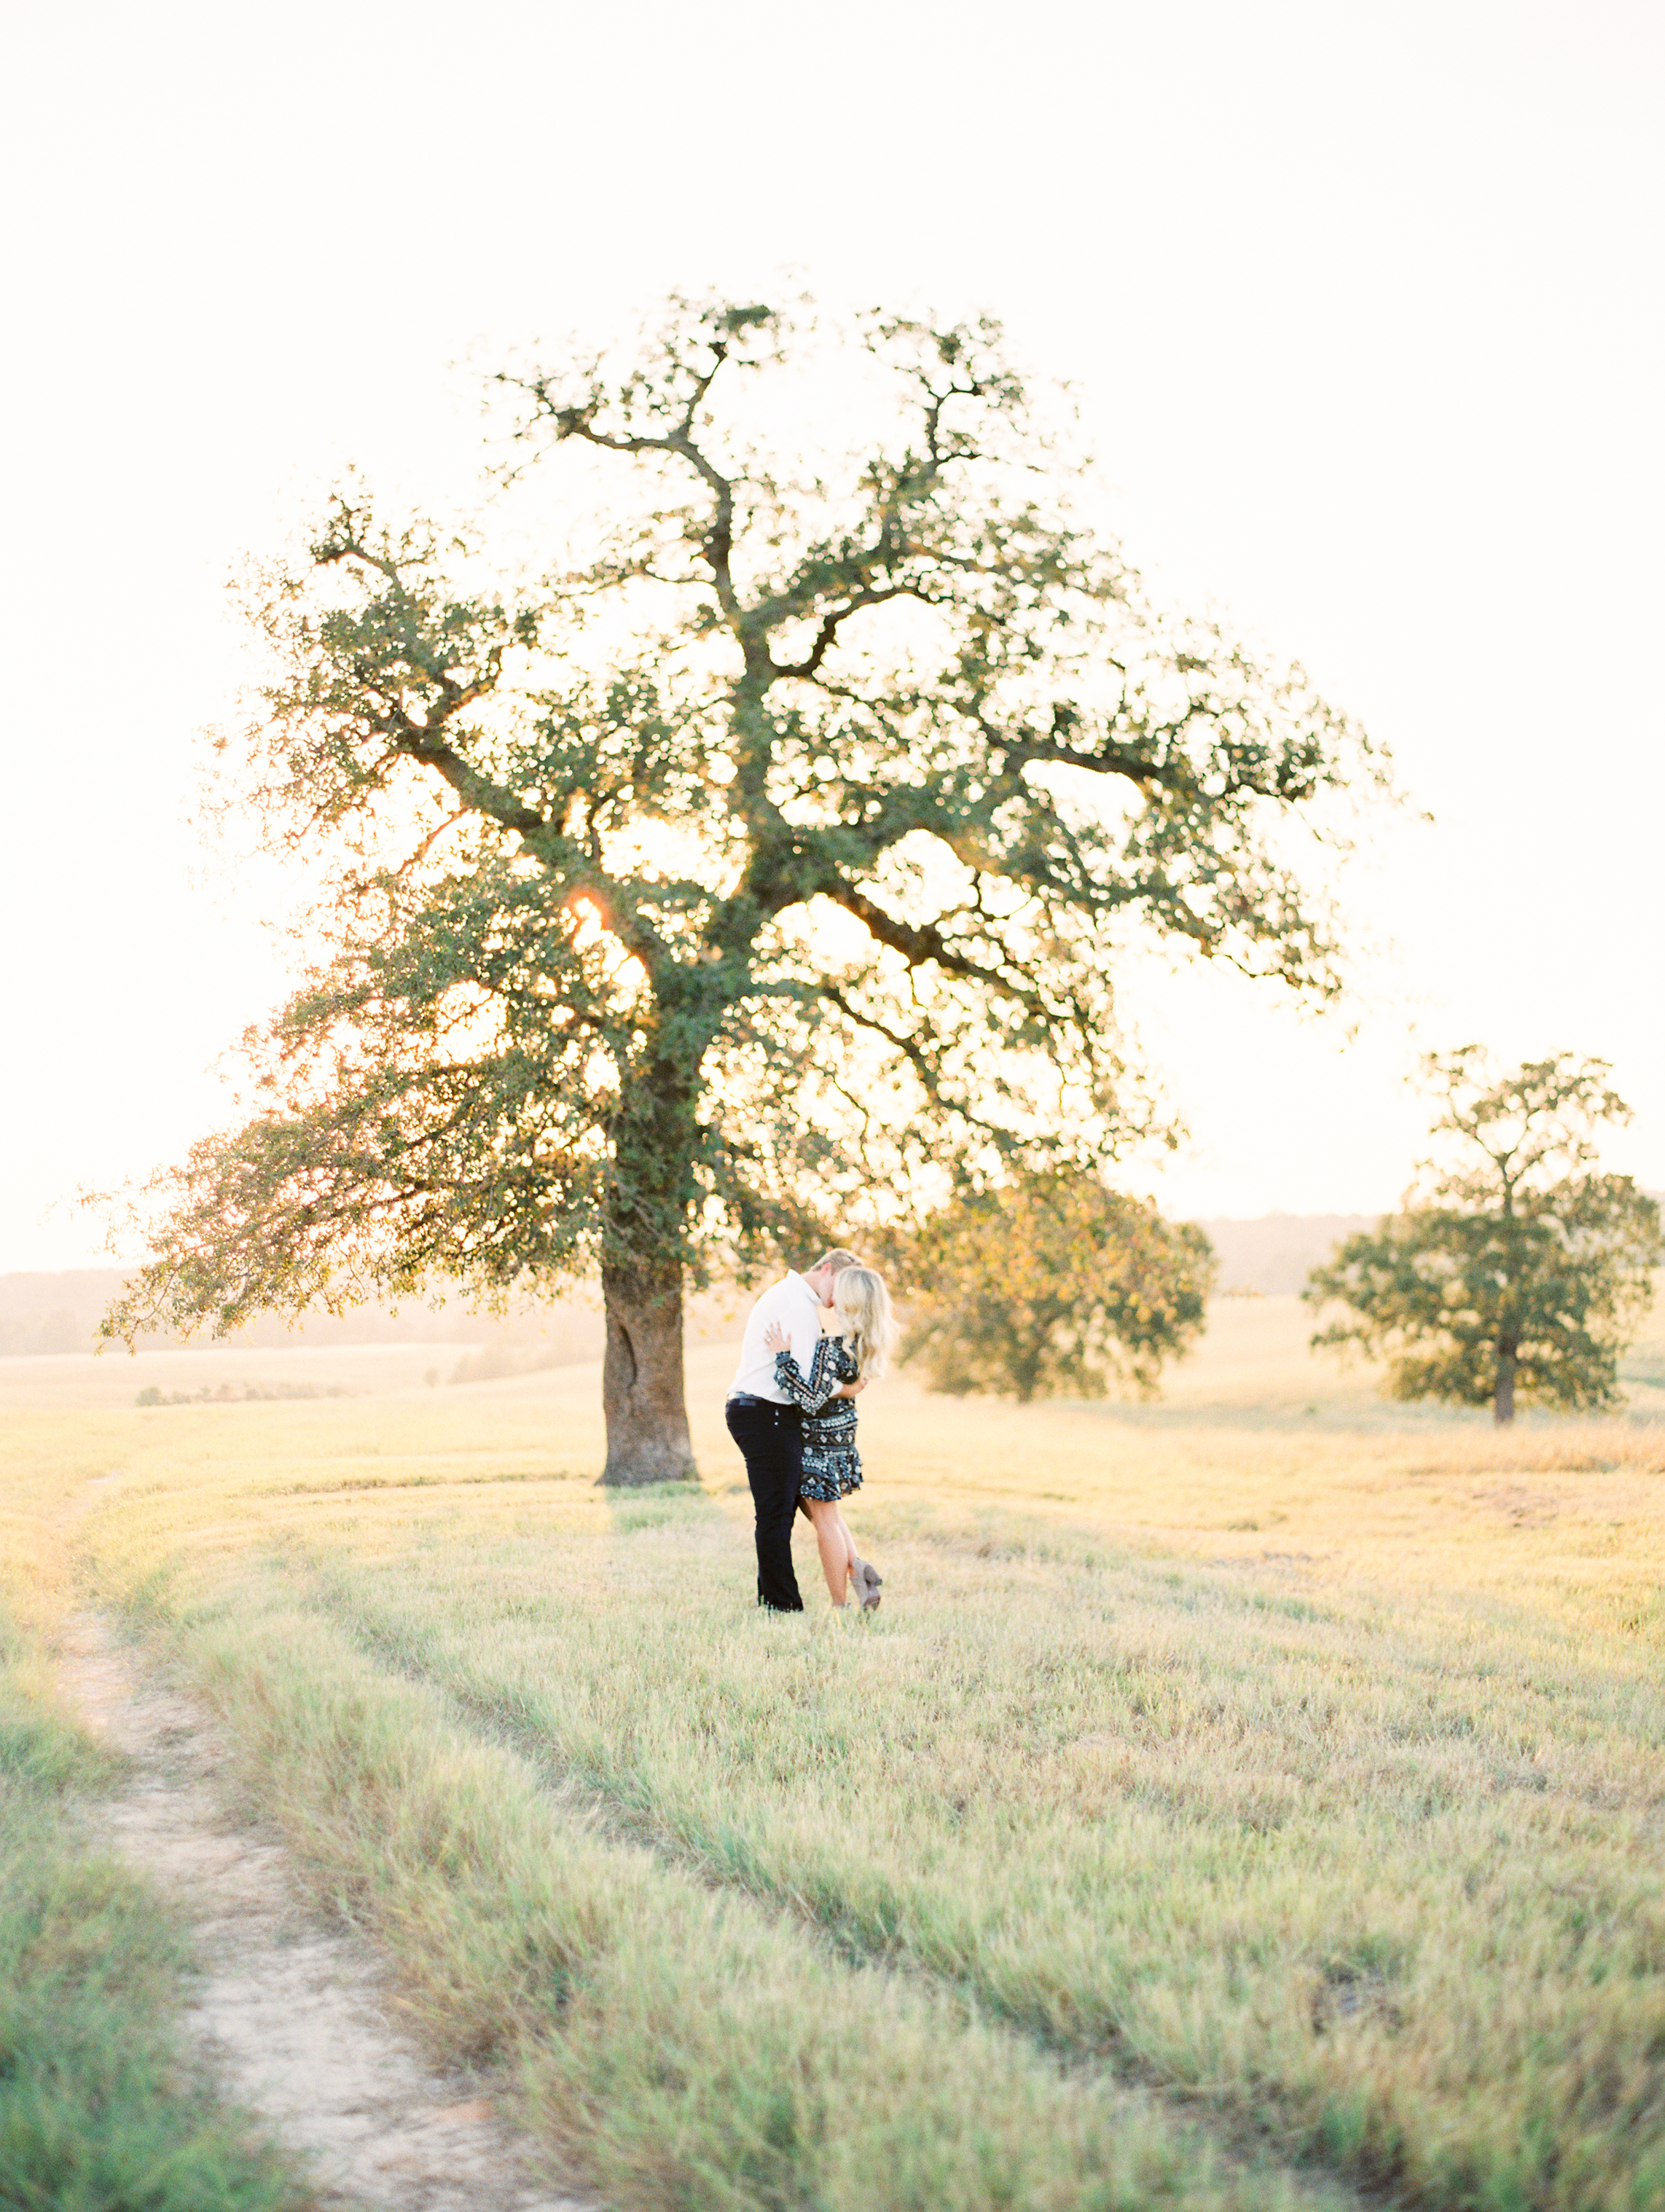 Lauren+John+Engaged+TX-57.jpg